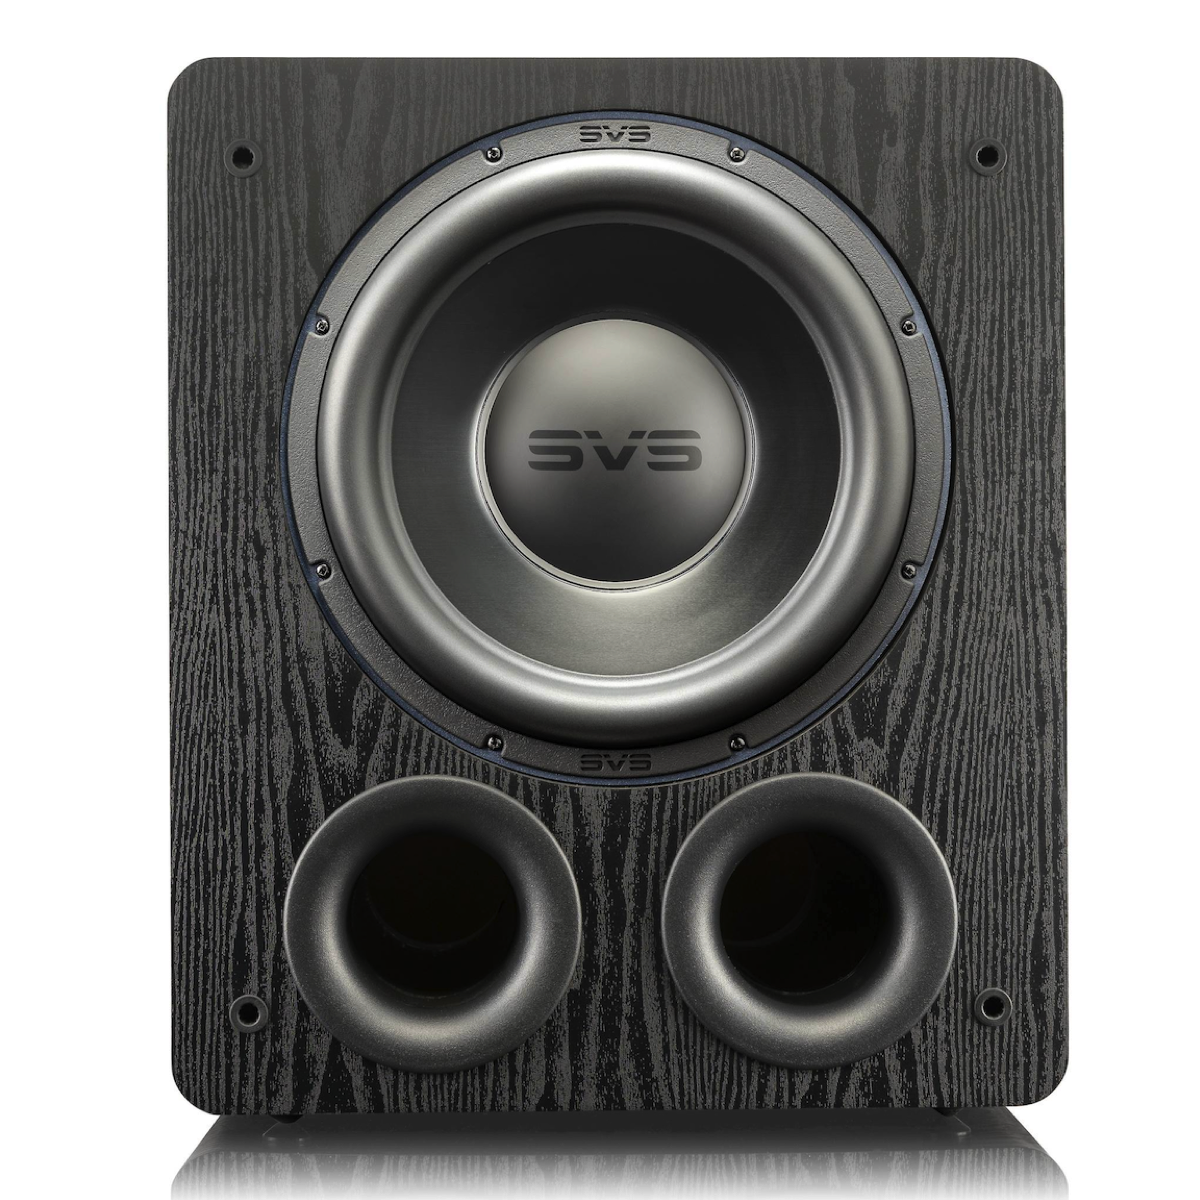 SVS Sound PB-3000 - Subwoofer (Black Ash), SVS Sound, Subwoofer - AVStore.in